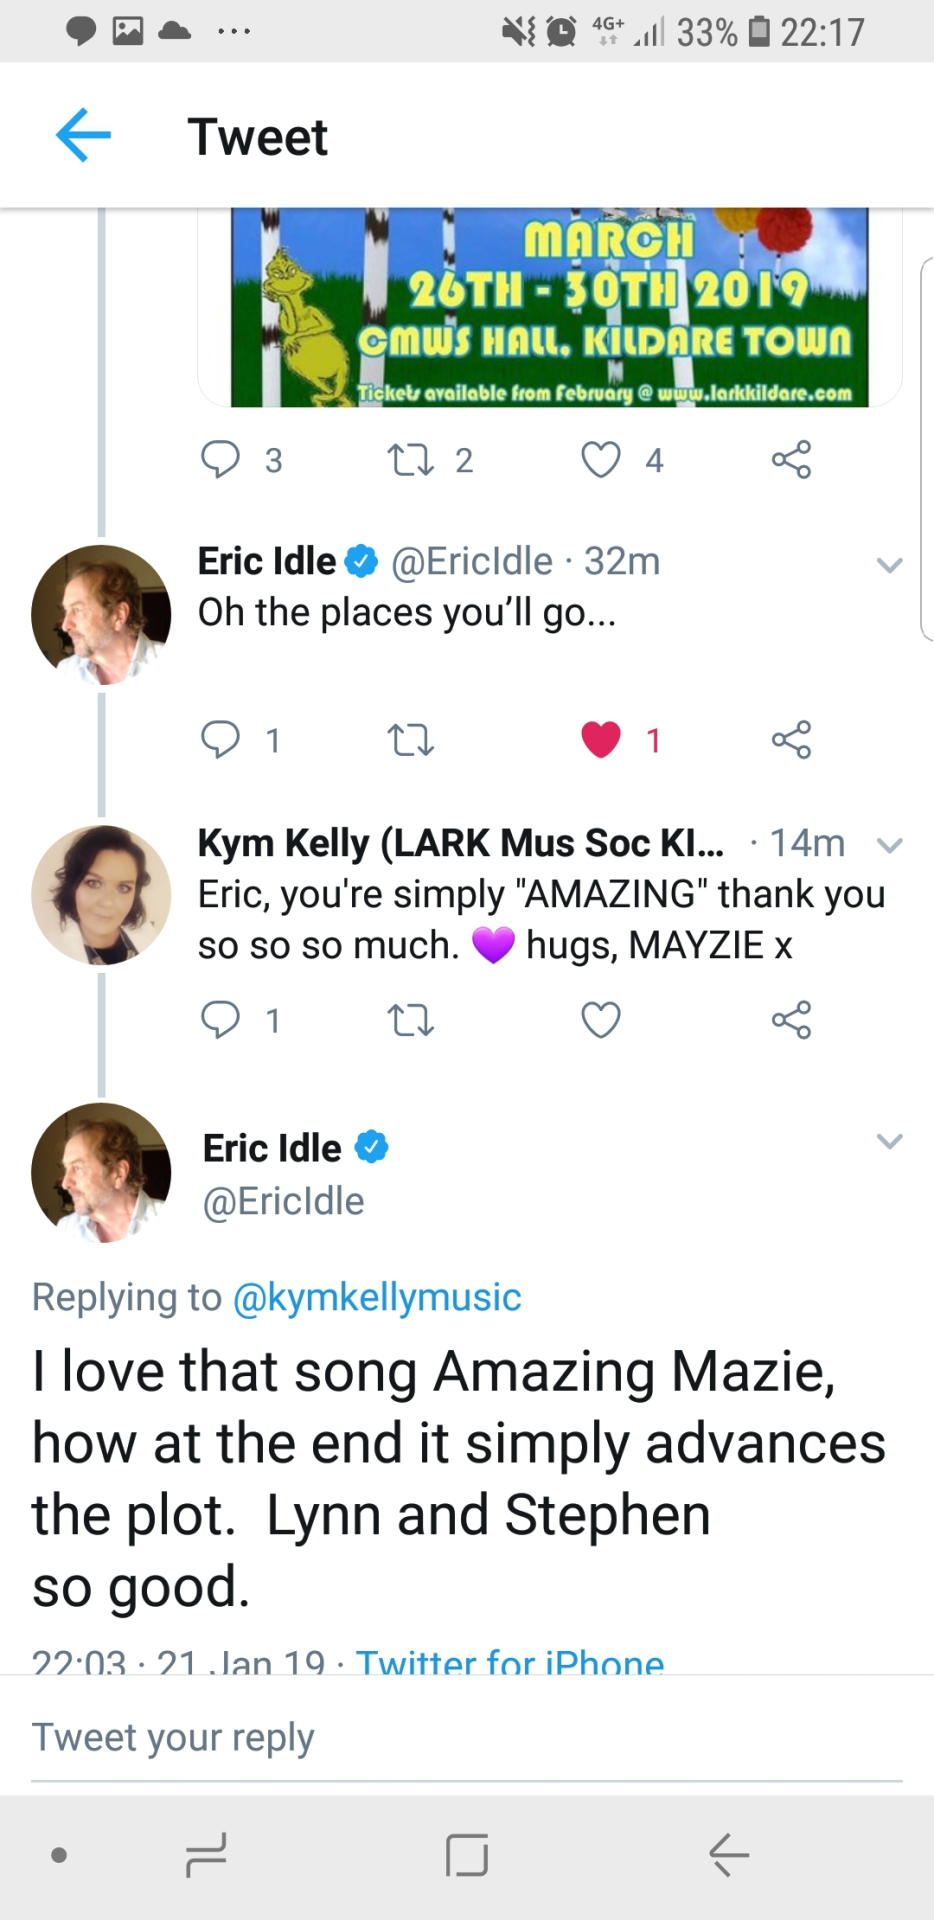 The good luck tweet from Monty Python's Eric Idle